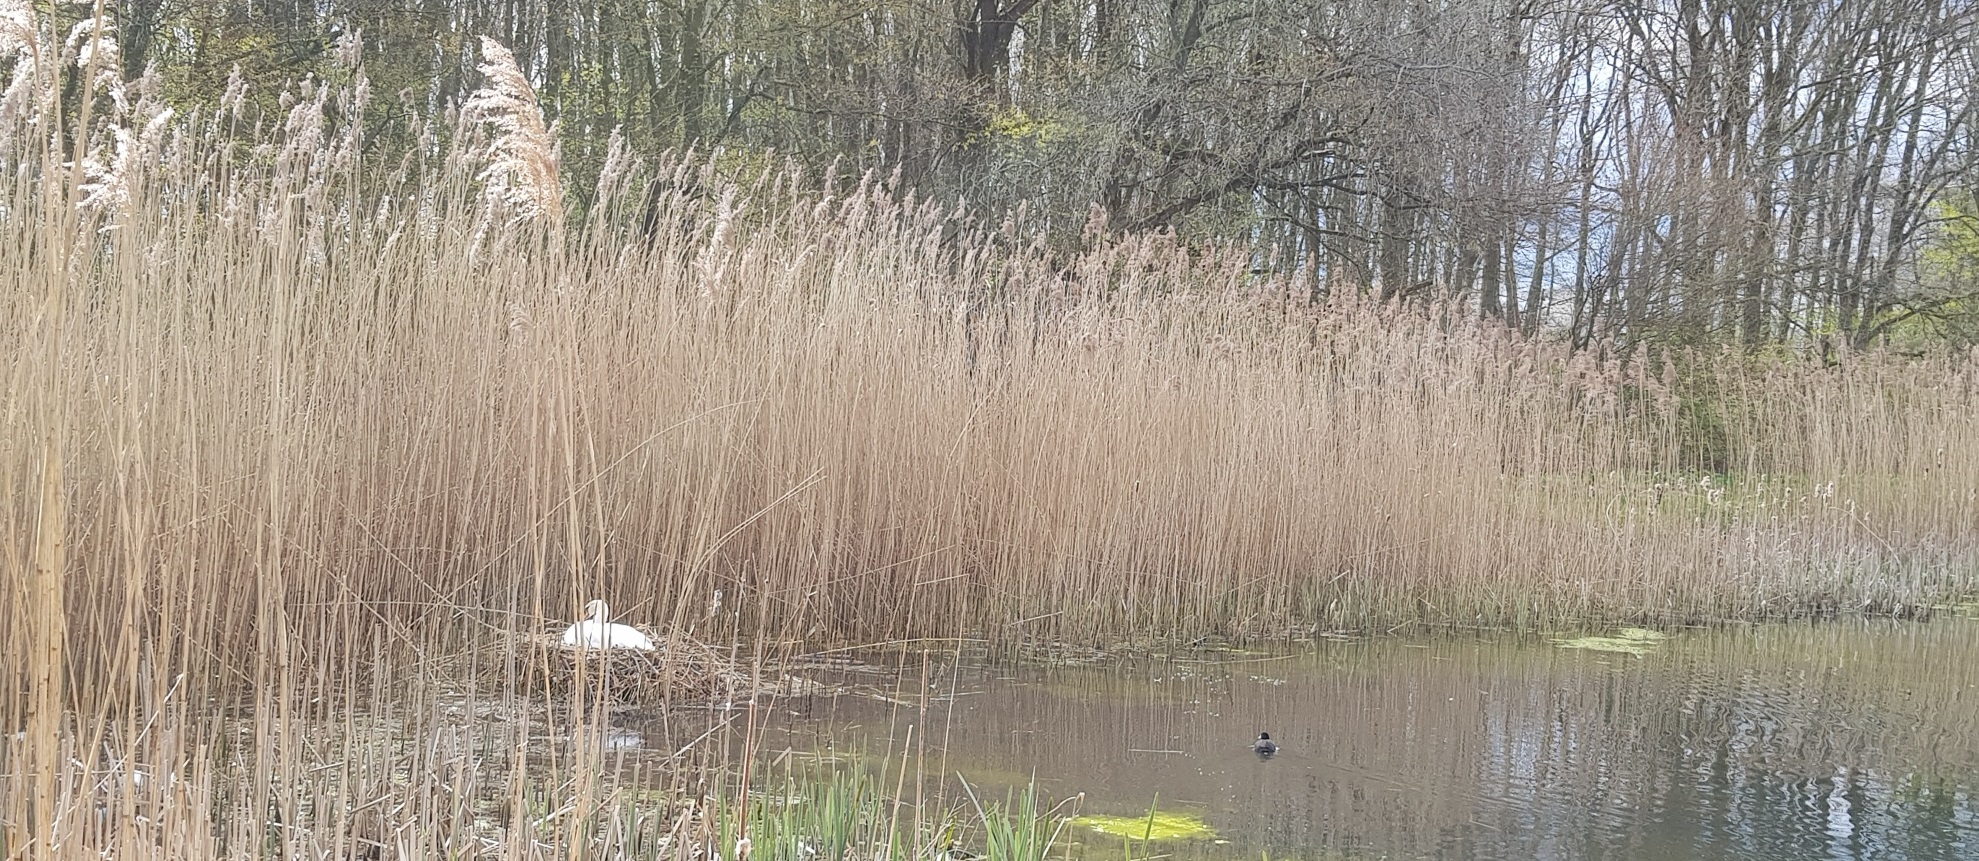 Swans colonise the campus